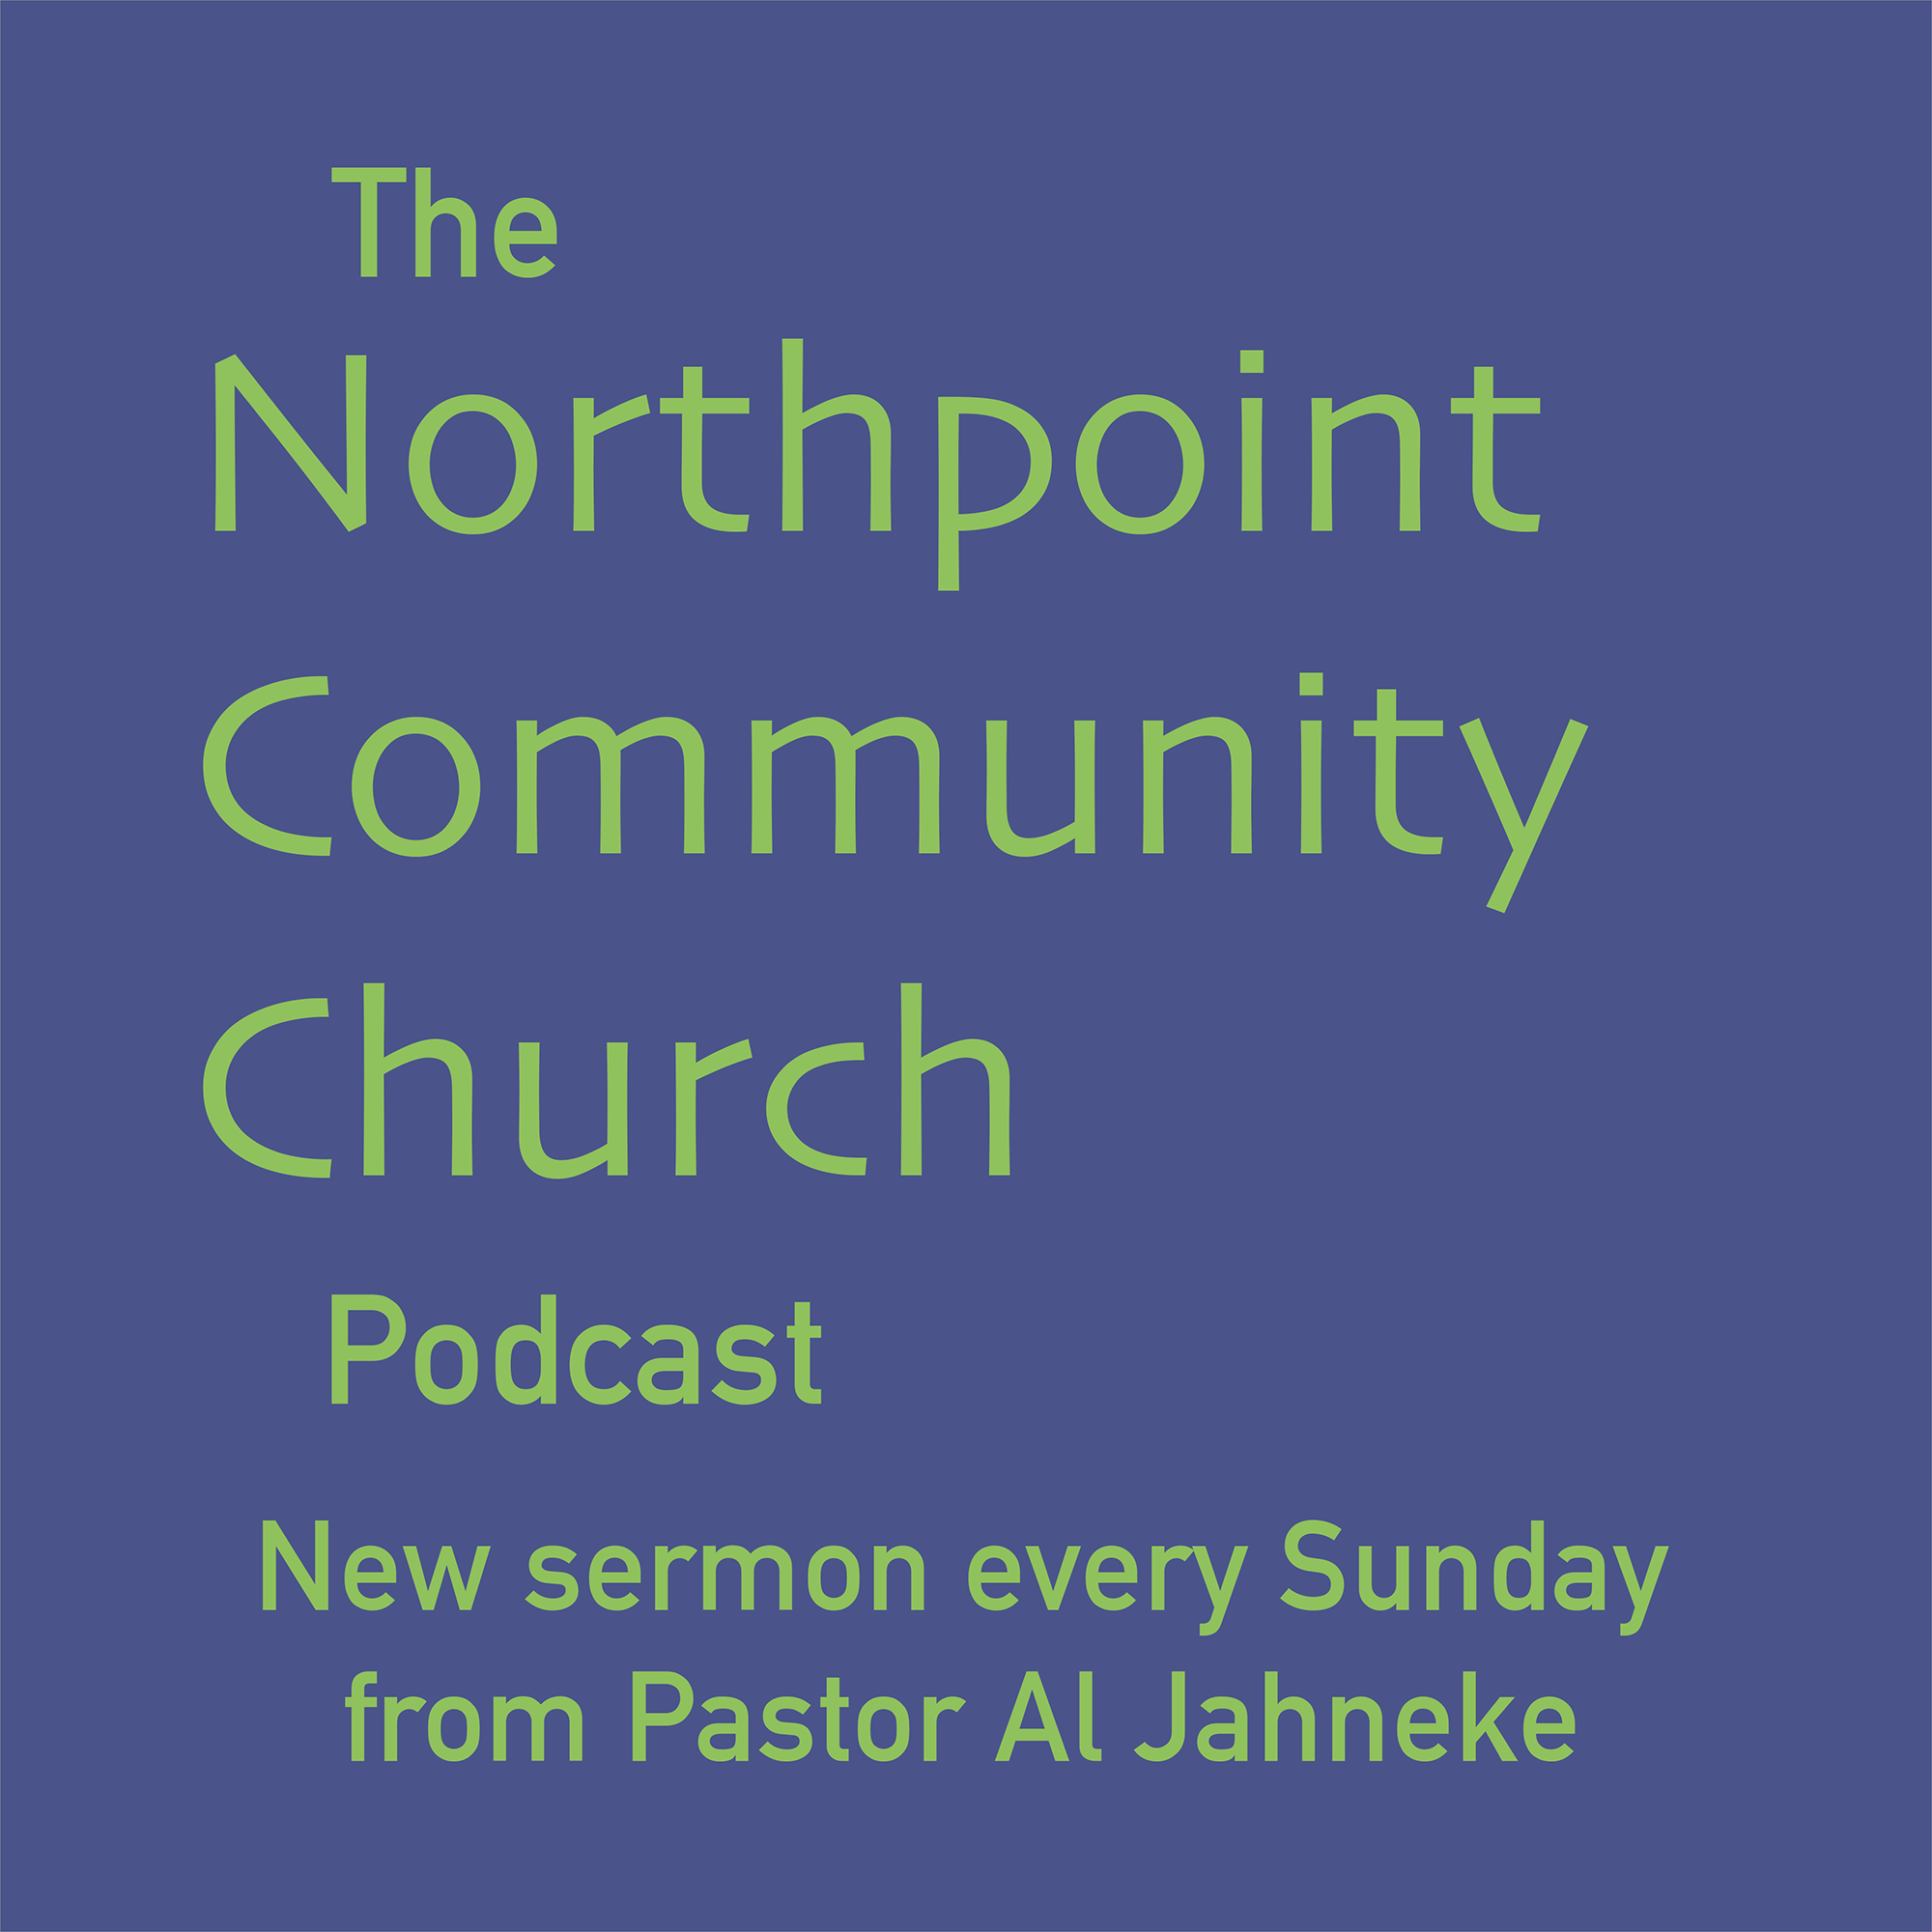 The NorthPoint Community Church Podcast